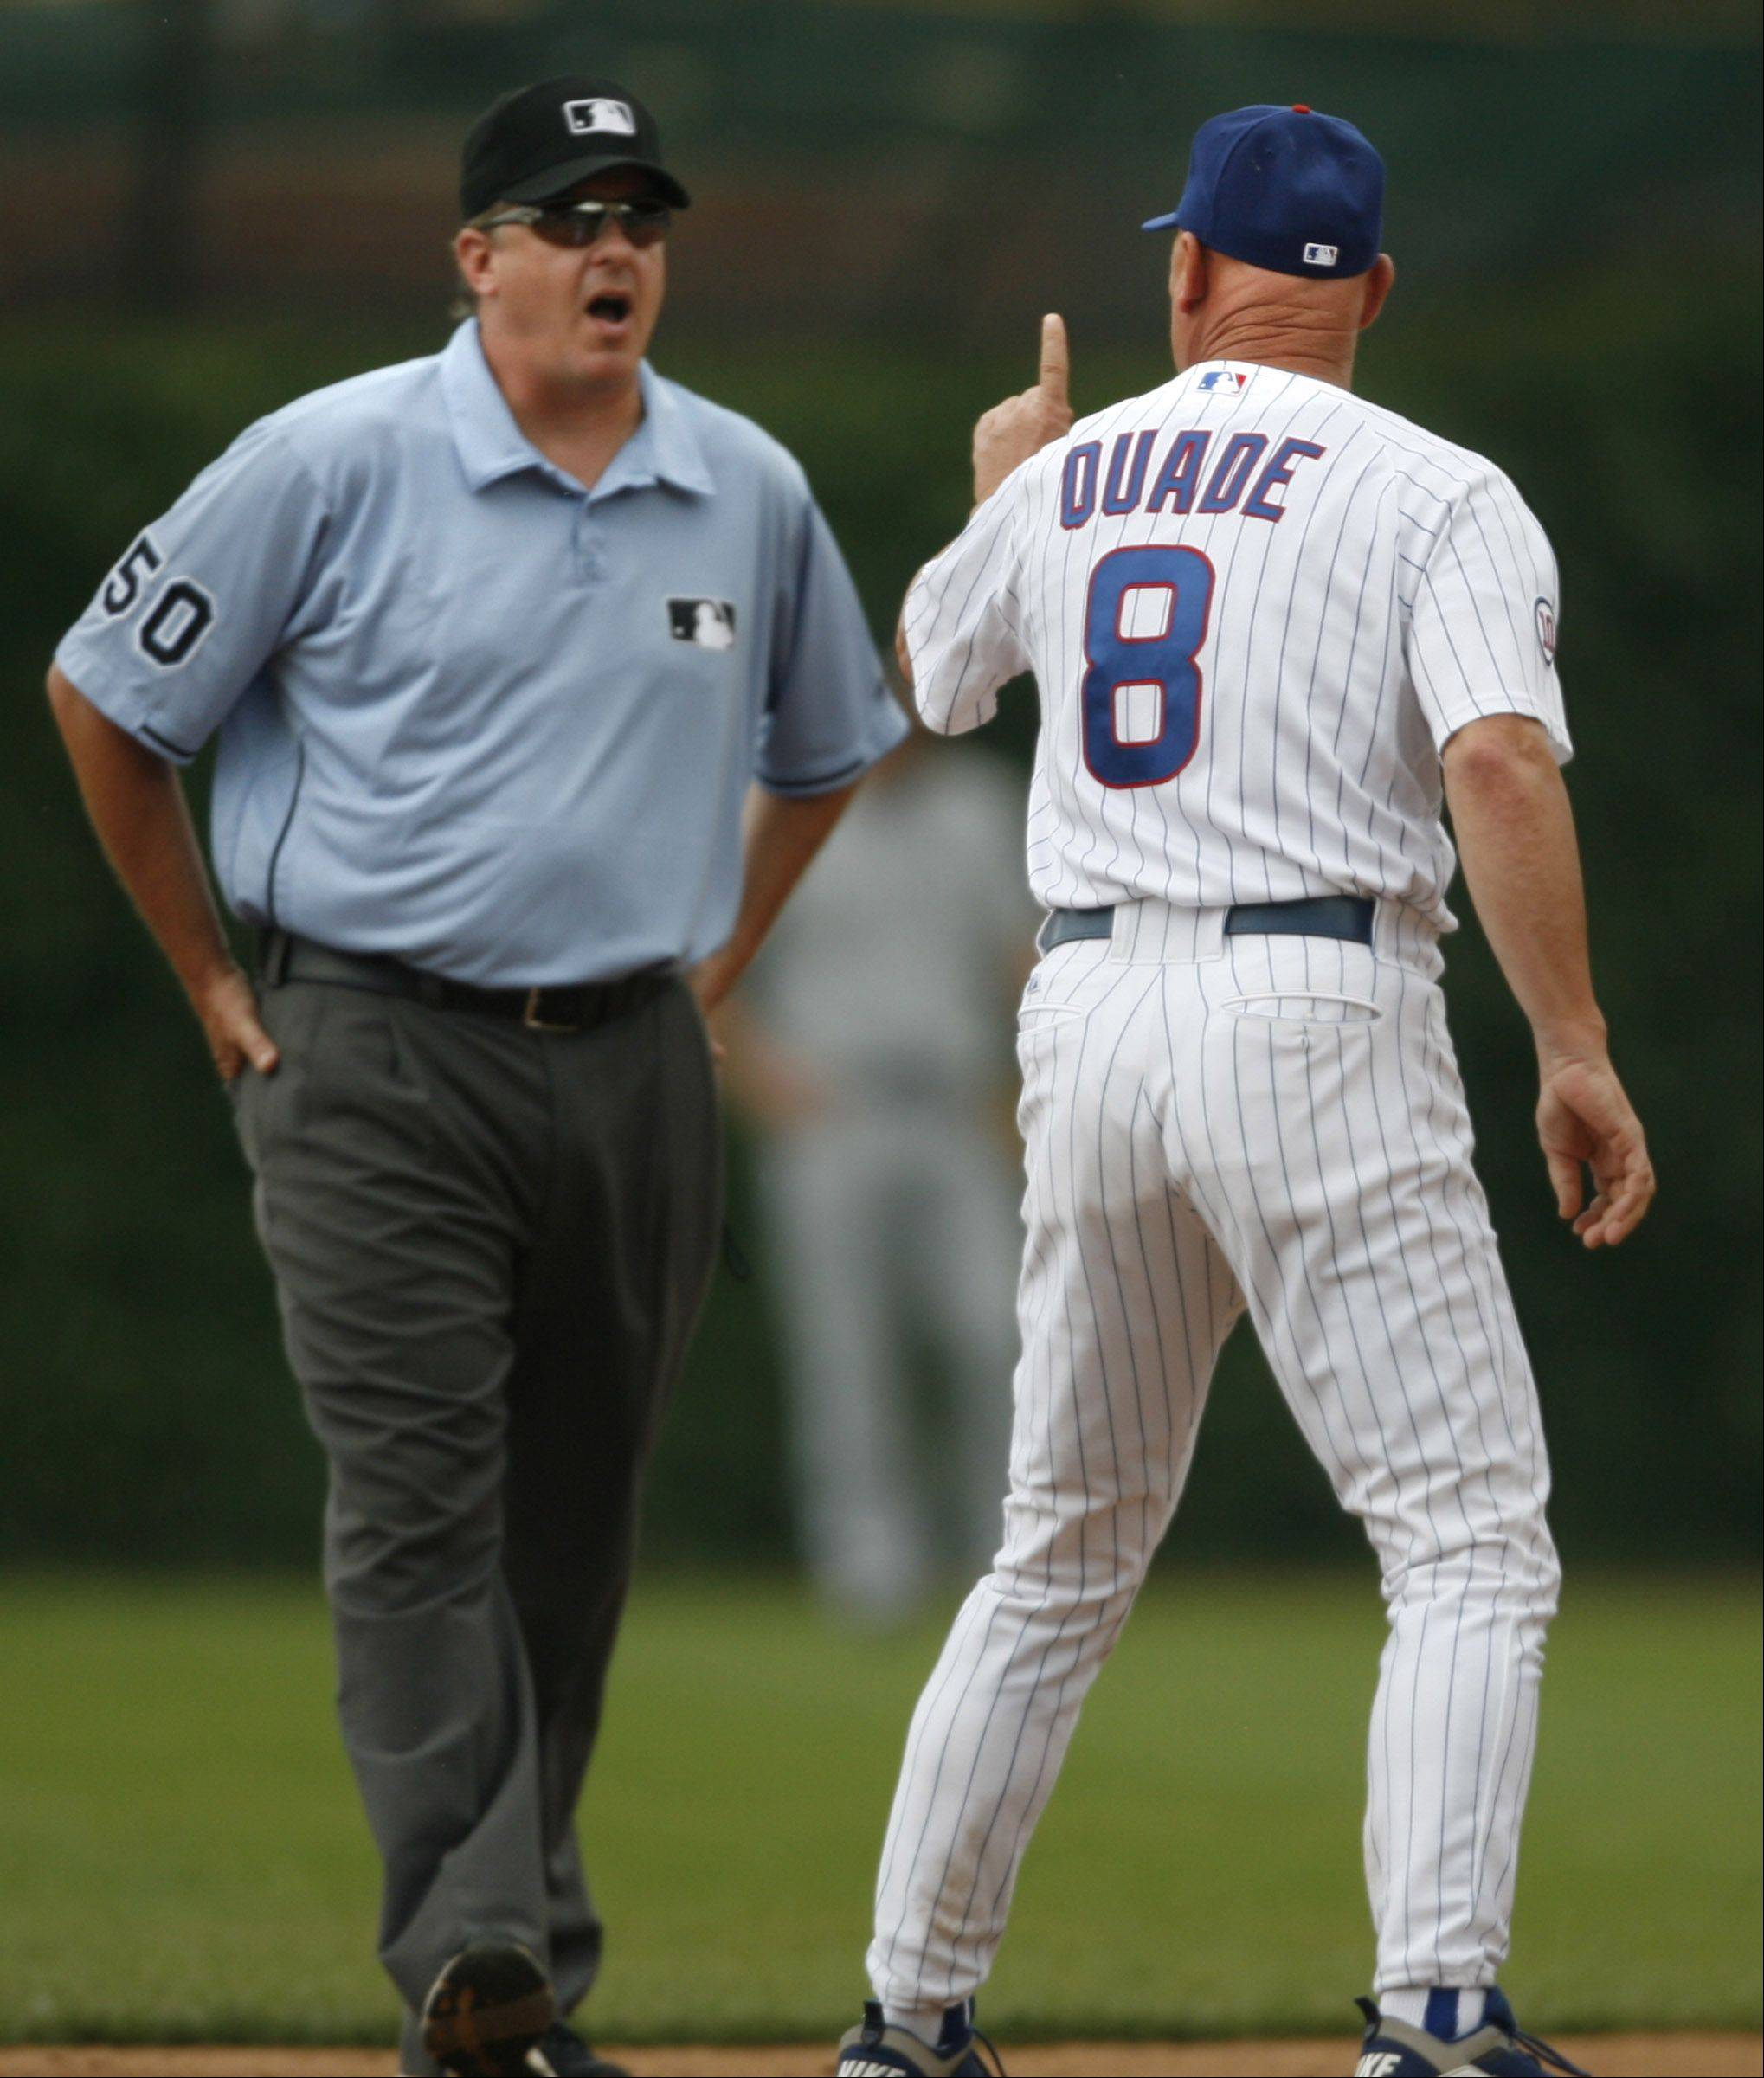 Cubs manager Mike Quade continues to argue after being thrown out of the game with the White Sox at Wrigley Field.